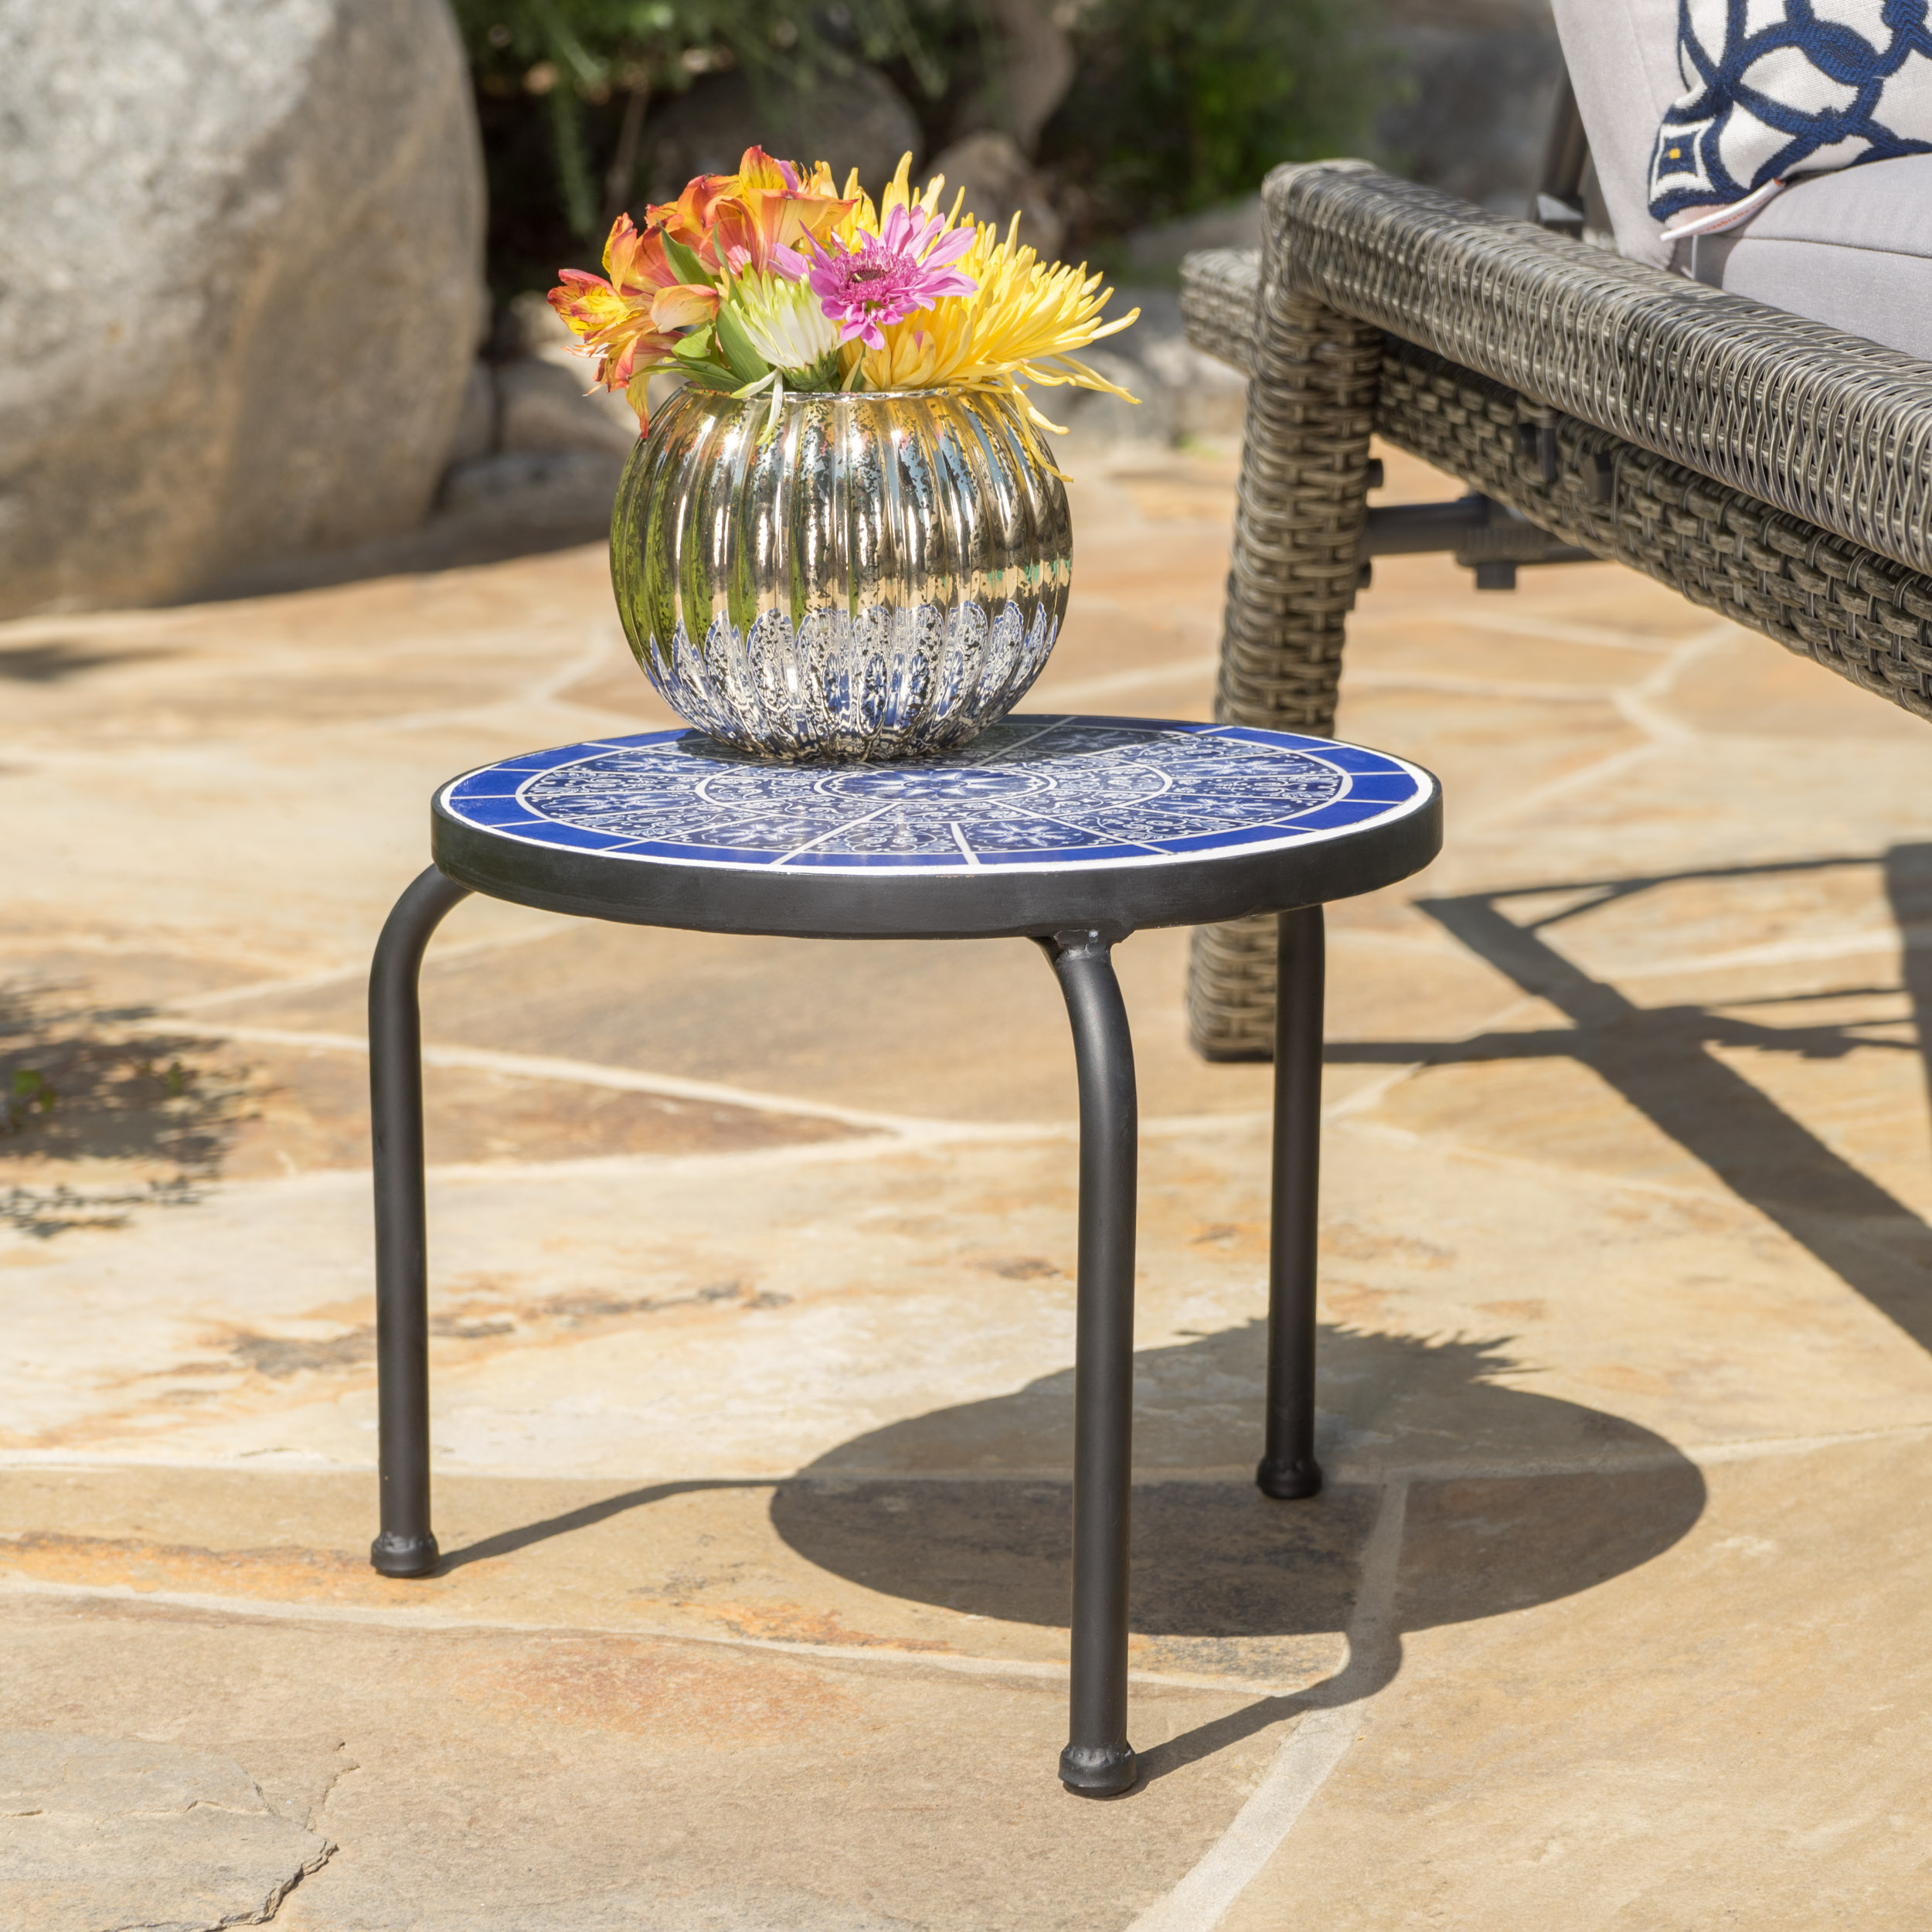 bryan outdoor ceramic tile side table with iron frame blue and accent white butler round charging station pier lawn furniture jcpenney quilts cool lamps modern patio covers